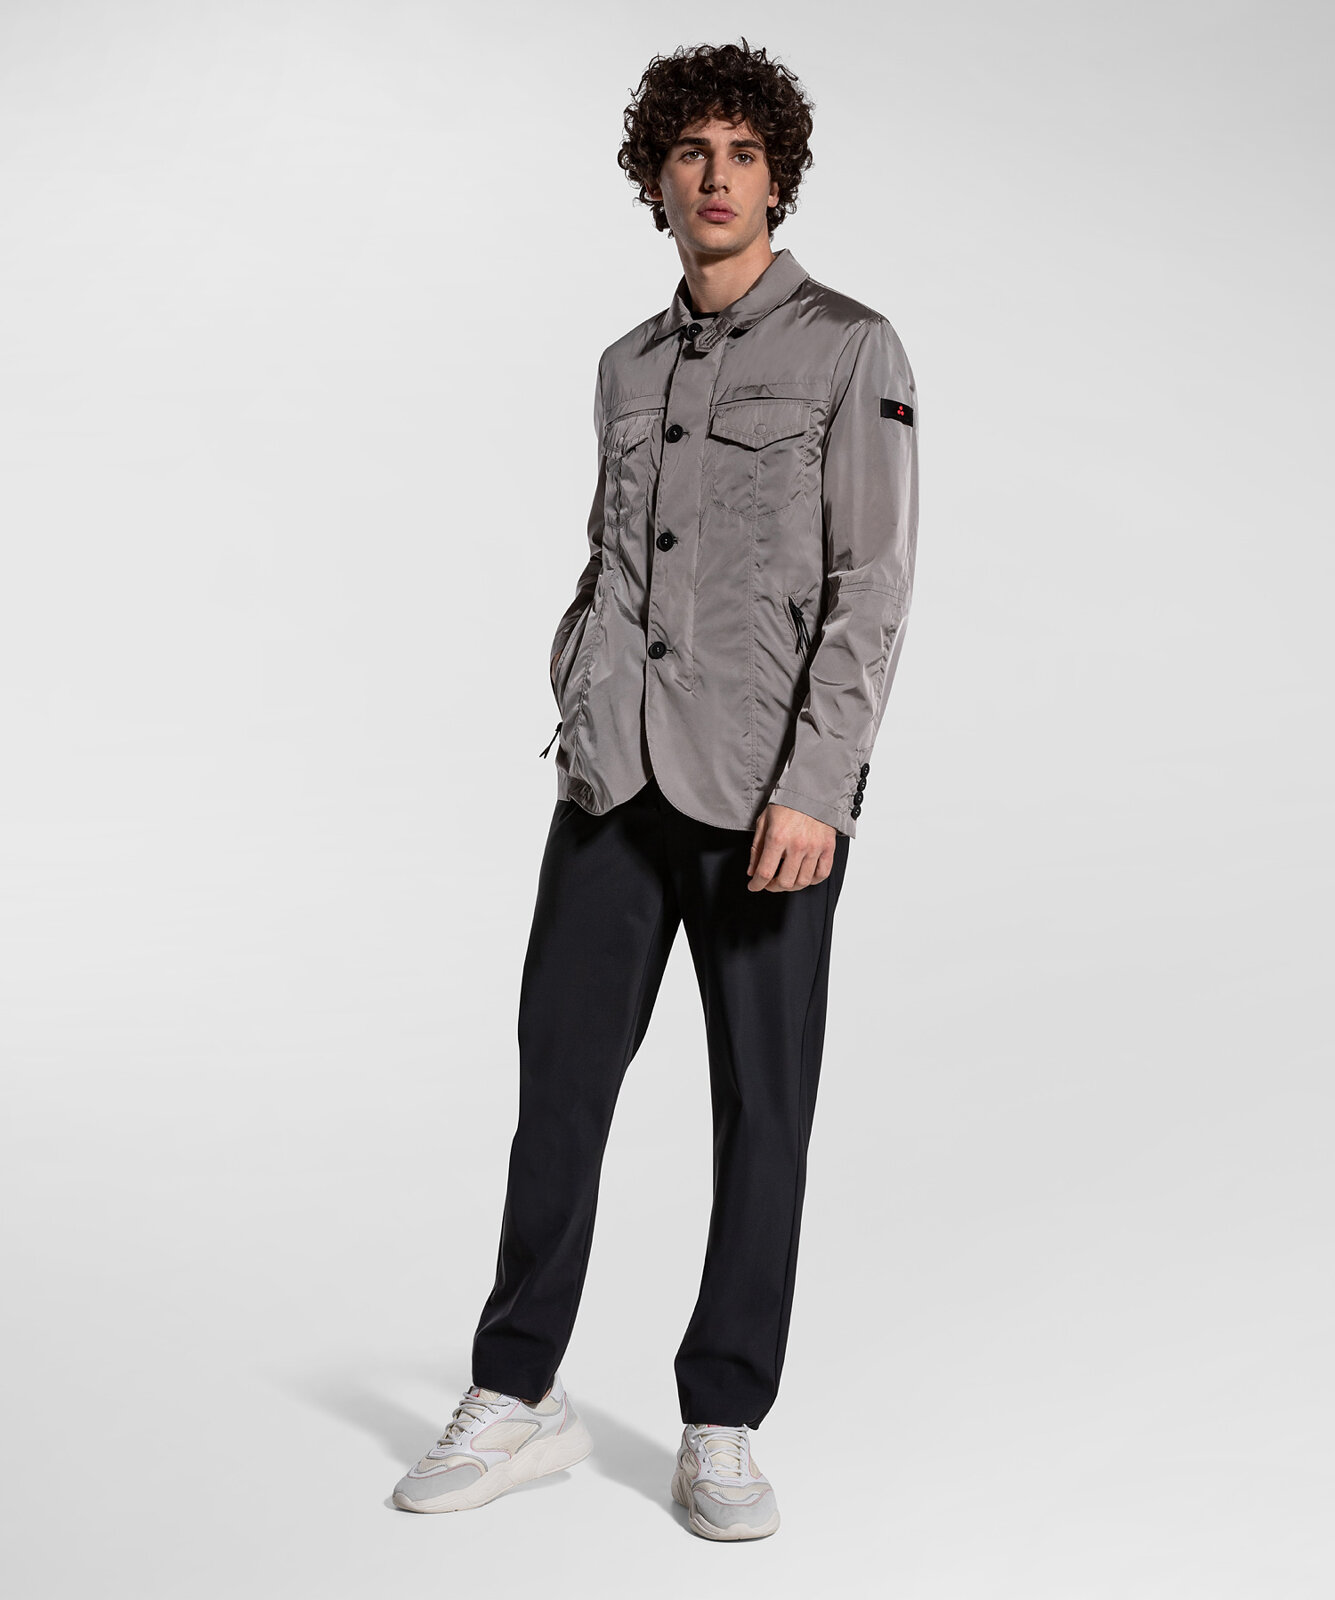 Field Jacket In Nylon Ad Effetto Cangiante - Peuterey